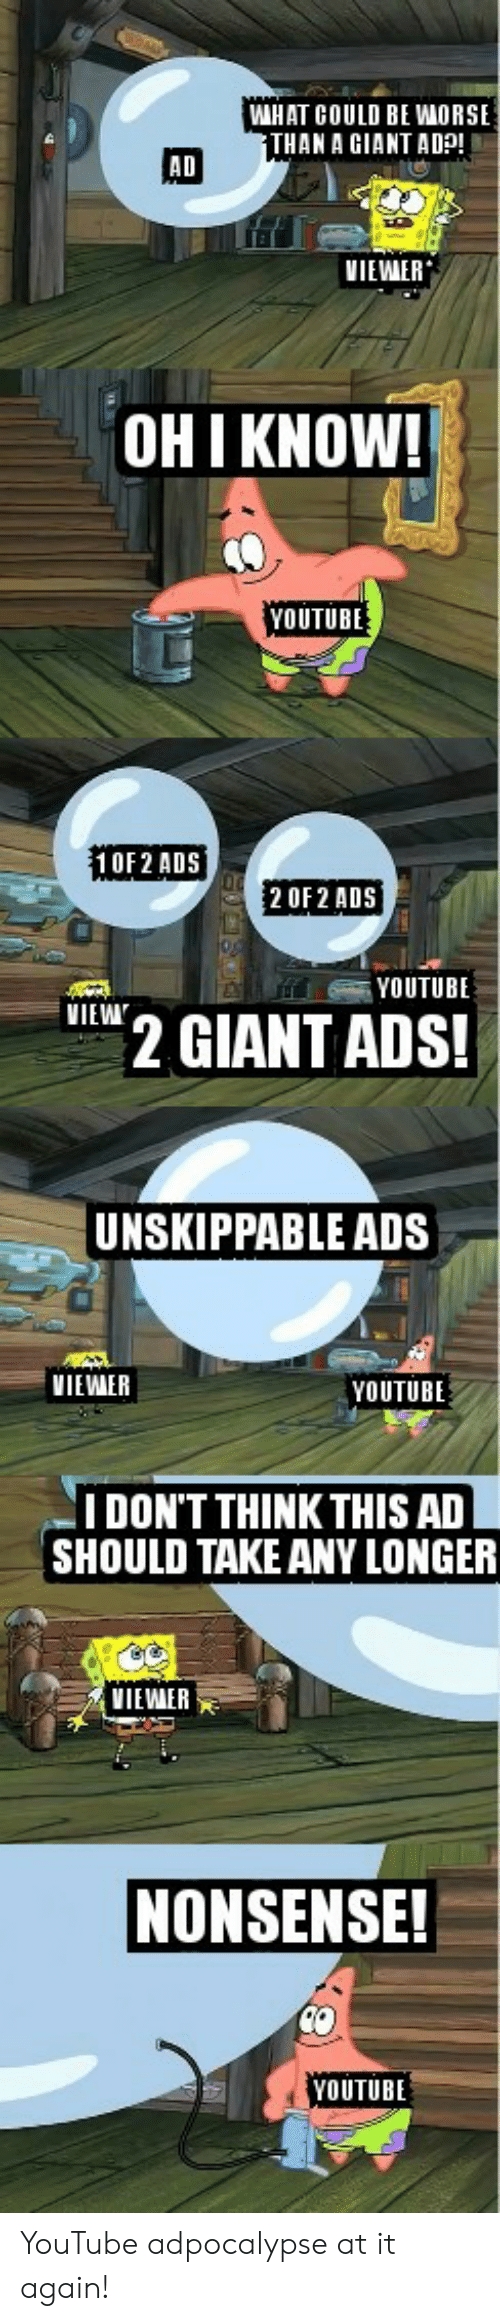 could be worse: WHAT COULD BE WORSE  THAN A GIANT ADp  AD  VIEWER  OHI KNOW!  YOUTUBE  10F2 ADS  2 OF 2 ADS  YOUTUBE  VIEW  2 GIANT ADS!  UNSKIPPABLE ADS  VIEWER  YOUTUBE  IDON'T THINK THIS AD  SHOULD TAKE ANY LONGER  VIEWAER  NONSENSE!  YOUTUBE YouTube adpocalypse at it again!